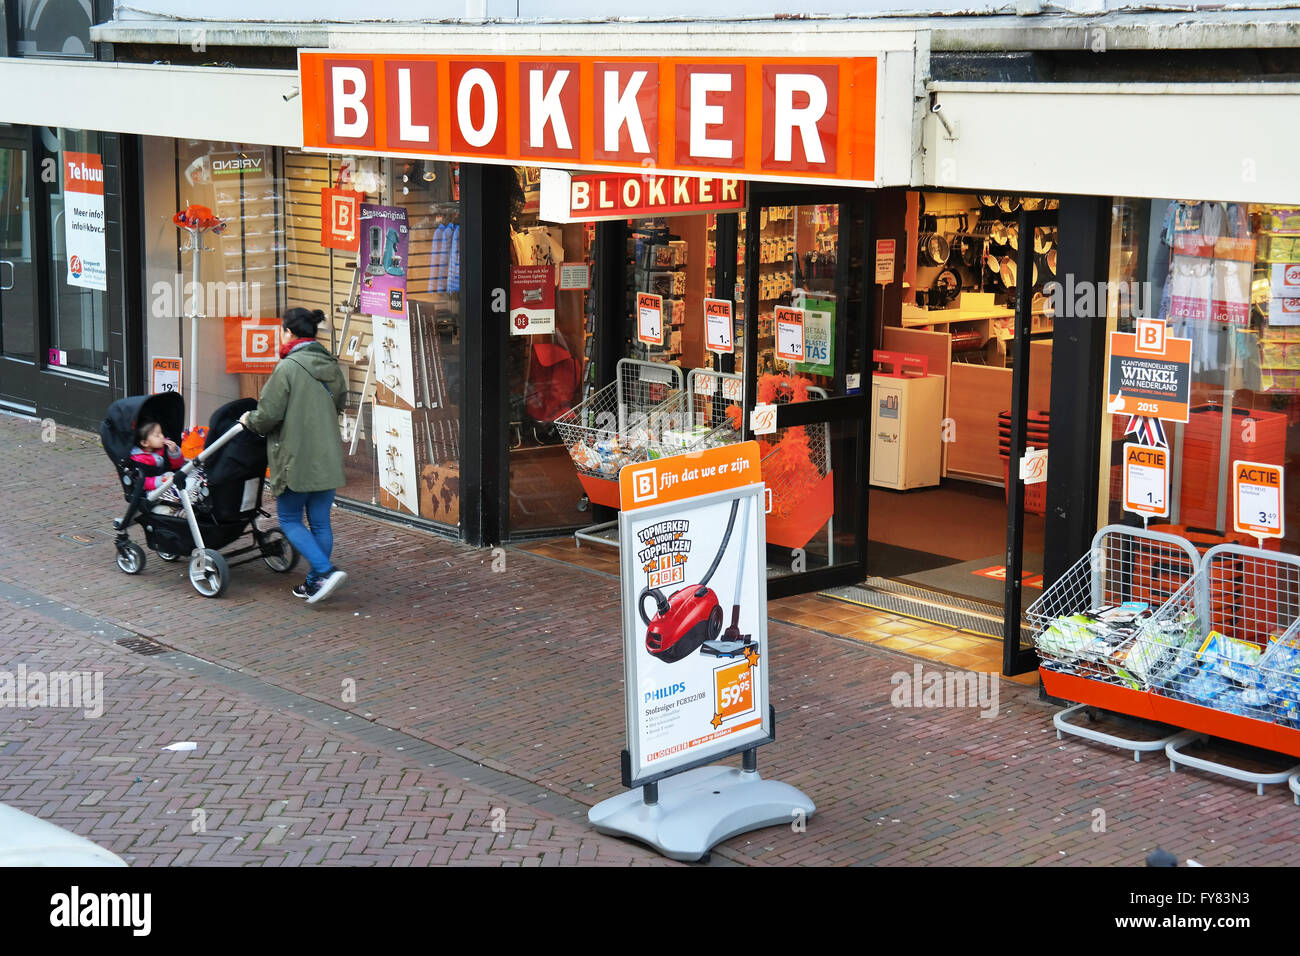 Blokker store, a Dutch Household appliances and interior decorating chain - Stock Image